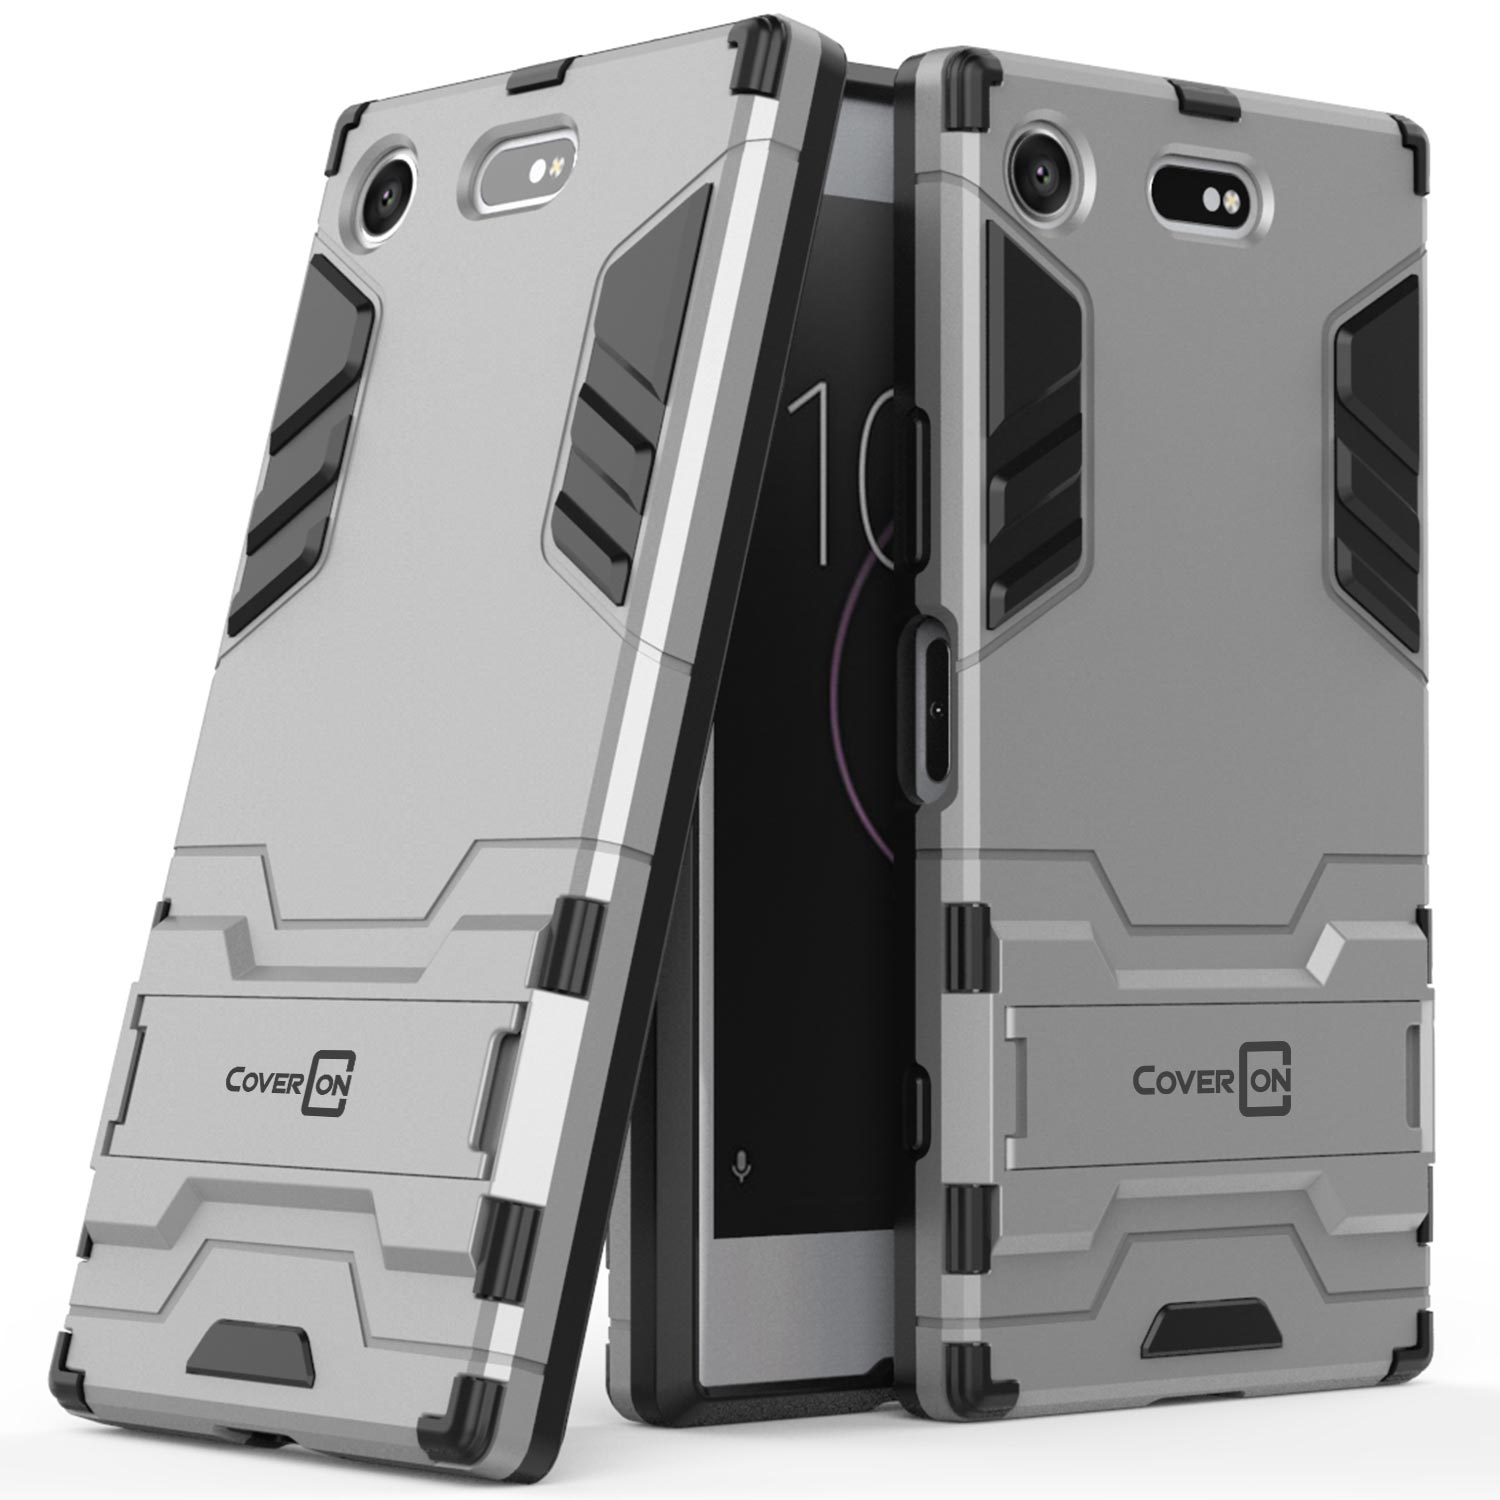 buy online cdb62 29de9 Details about for Sony Xperia XZ1 Compact Phone Case Armor Kickstand Slim  Hard Cover Silver